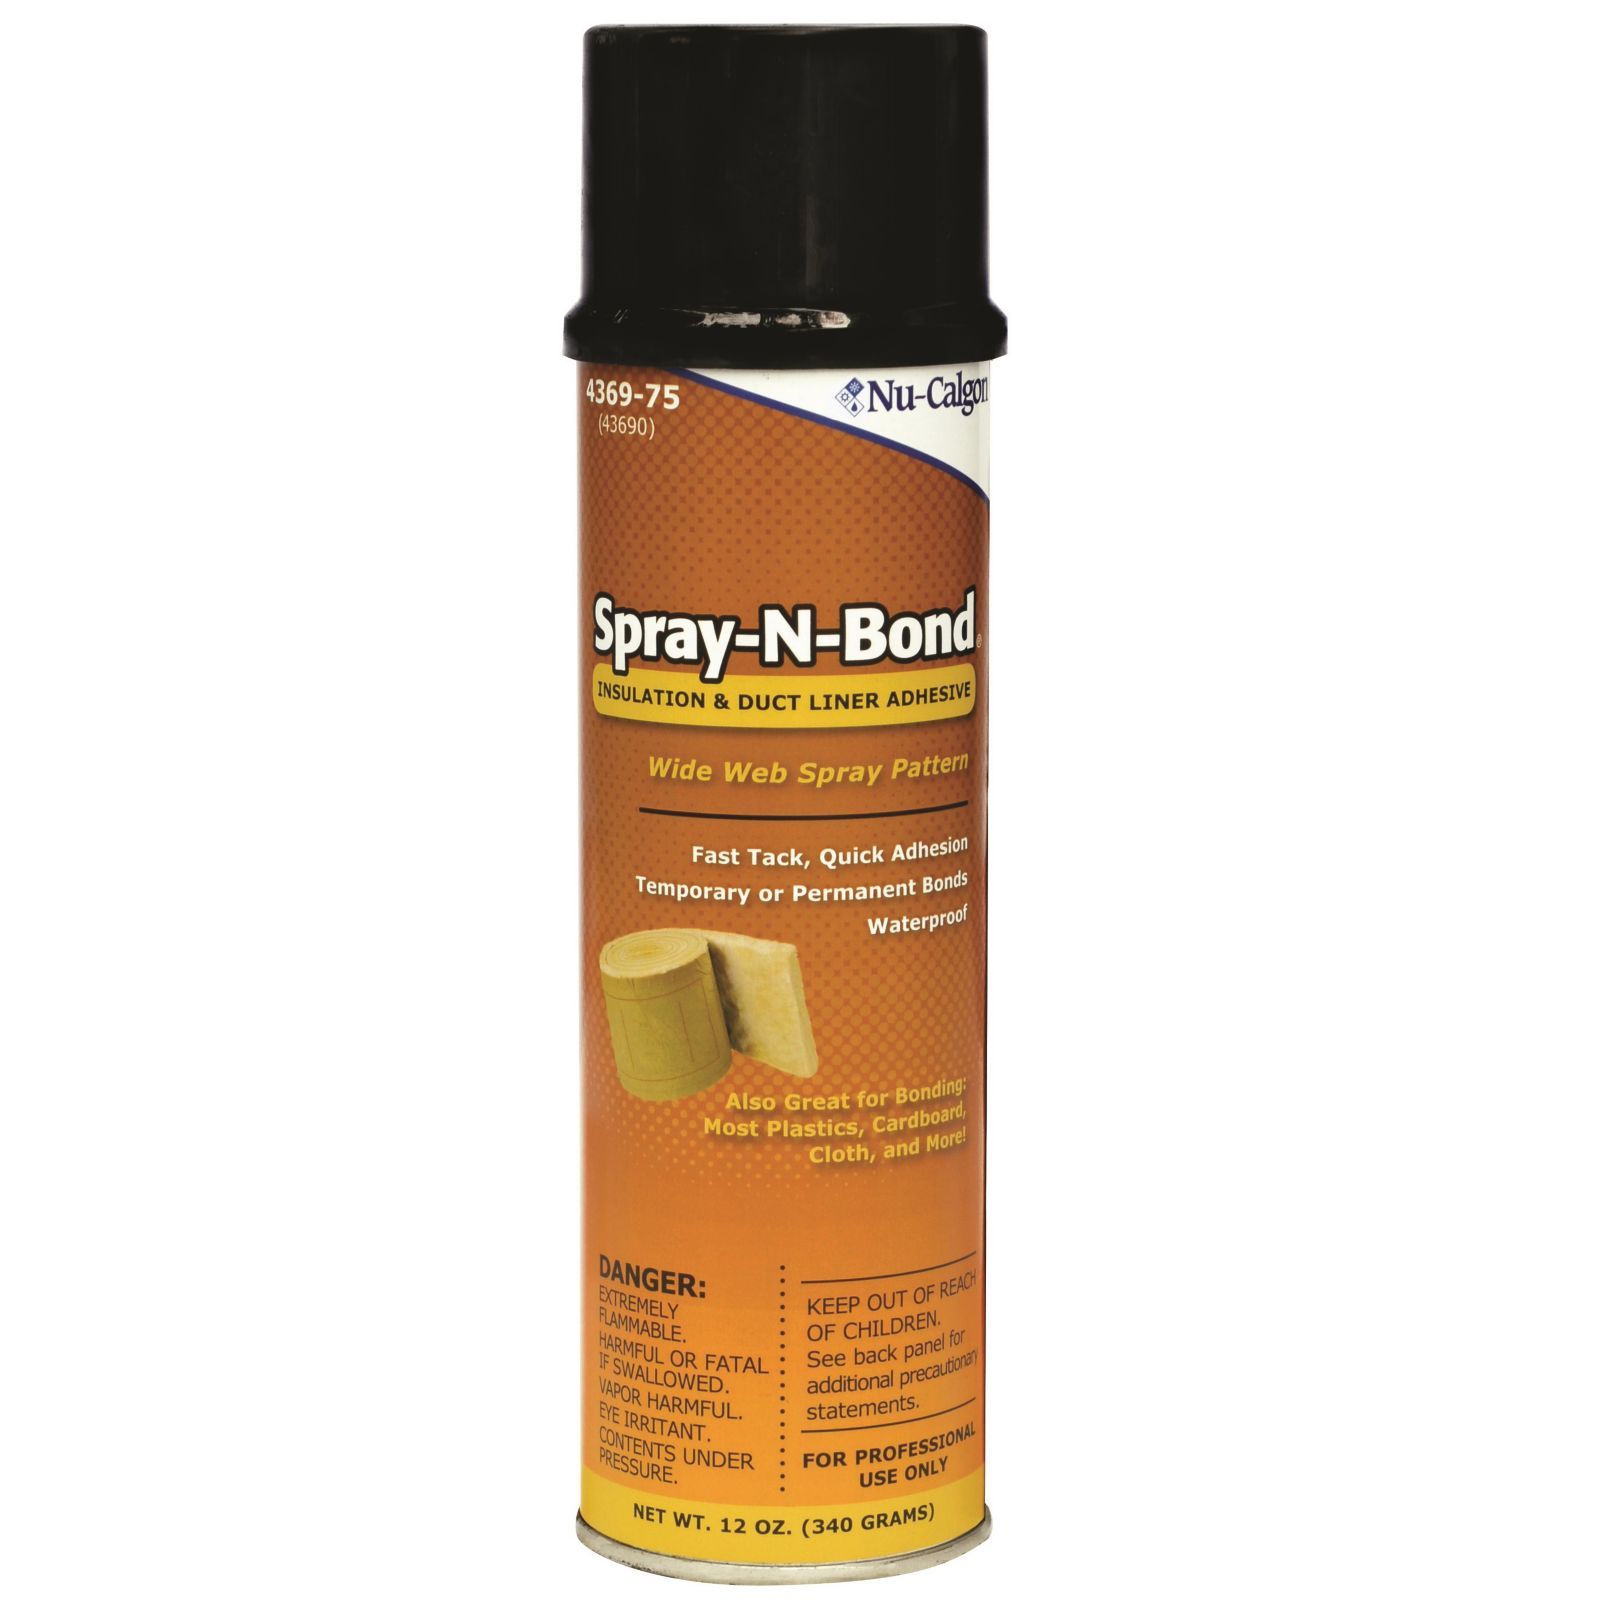 Nu-Calgon 4369-75 - Spray-n-Bond Insulation And Duct Liner Adhesive - 12 Ounce Aerosol